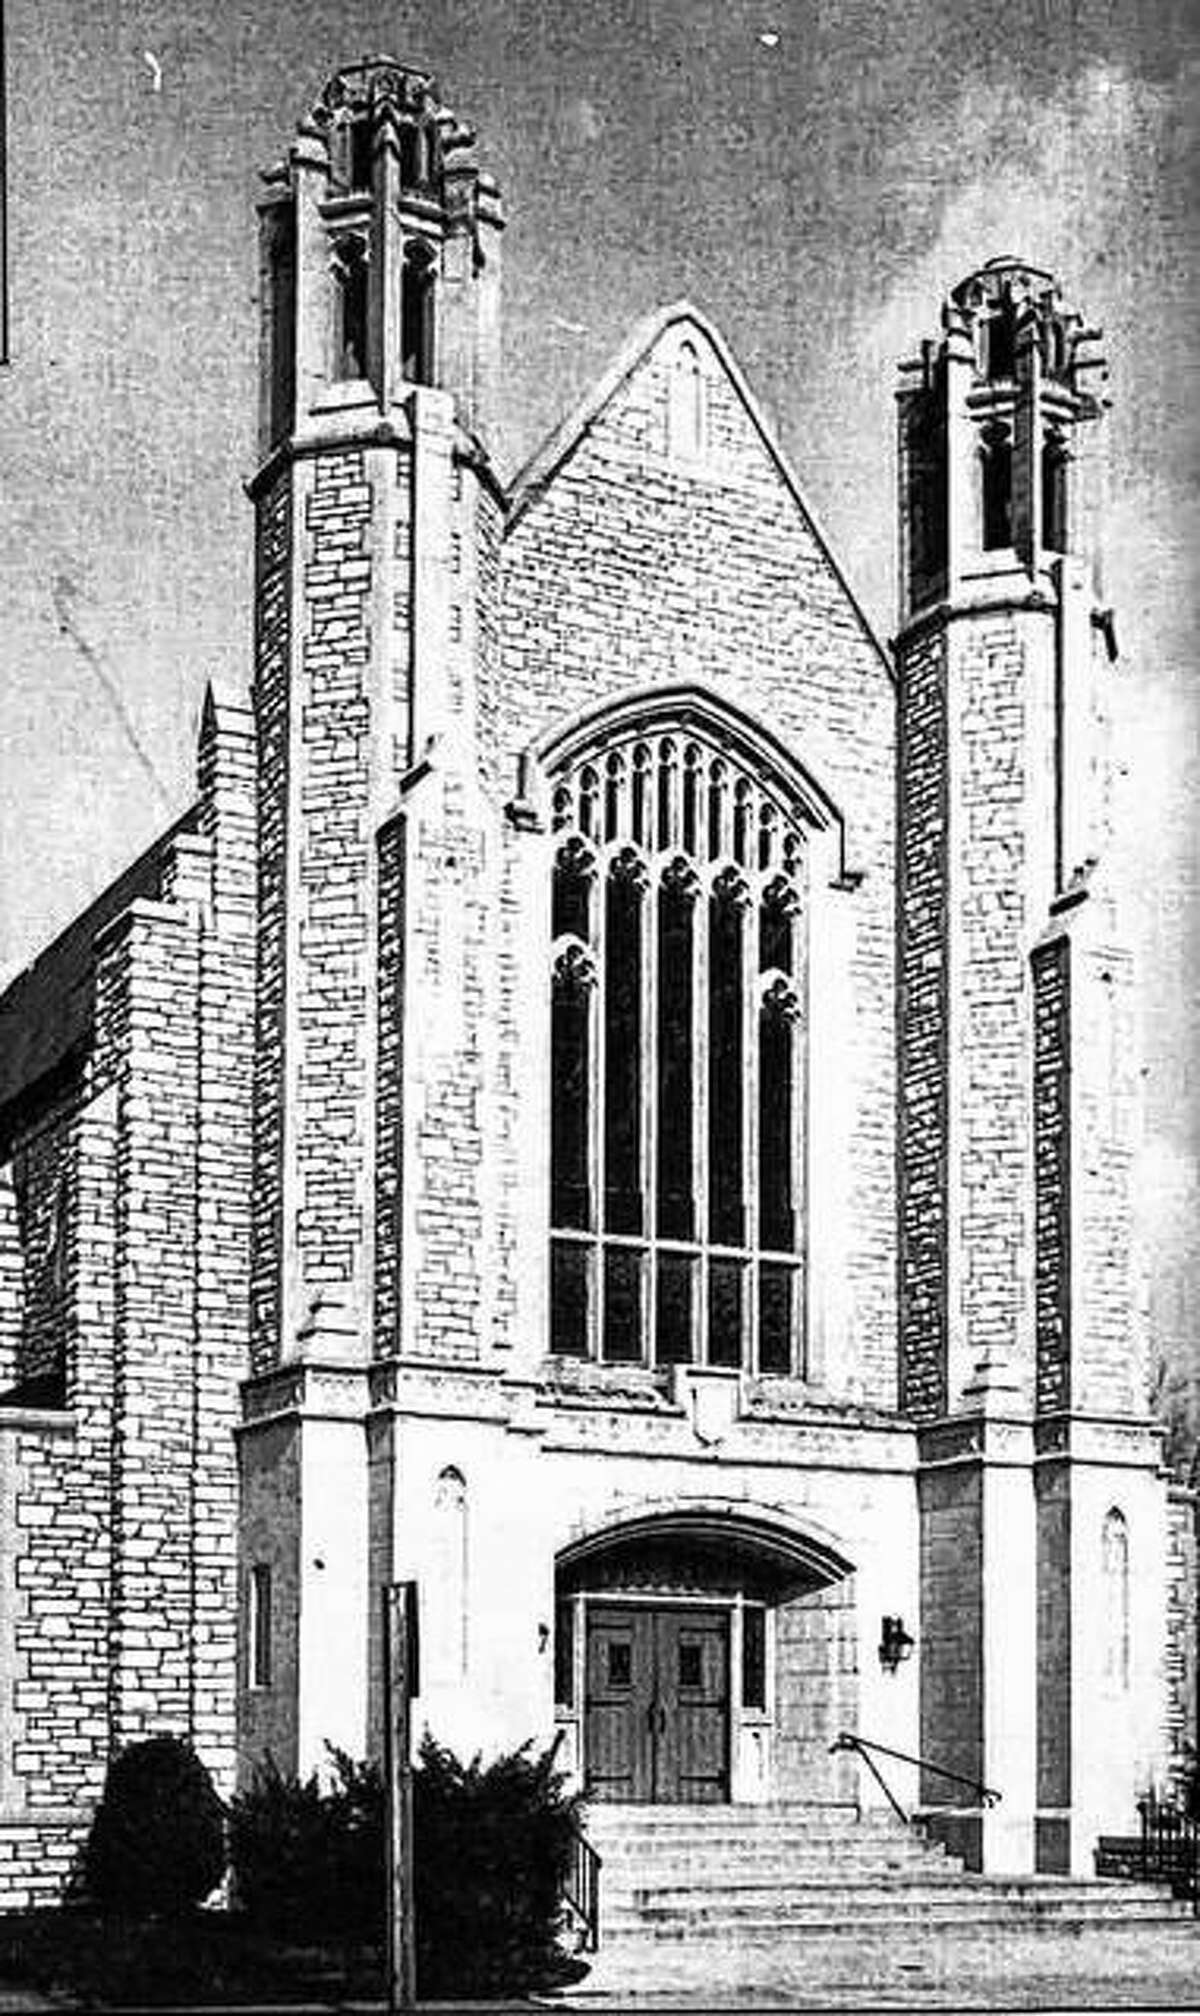 """The former College Avenue Presbyterian Church building was dedicated in November, 1927. Architect L. Baylor Pendleton selected the English Gothic style as being the closest to the """"Christian's ideal of a temple."""" The foundation and walls are of limestone taken from local quarries, laid in a """"random rubble style"""" which leaves the shape of each stone well defined. The roof is of natural blue slate from Vermont. The interior of the church also follows Gothic style. Embedded in the pulpit is a small stone taken from Mars Hill (The Aeropagus) where the Apostle Paul delivered a famous sermon. Additional buildings housed the education department, gymnasium, and meeting facilities."""